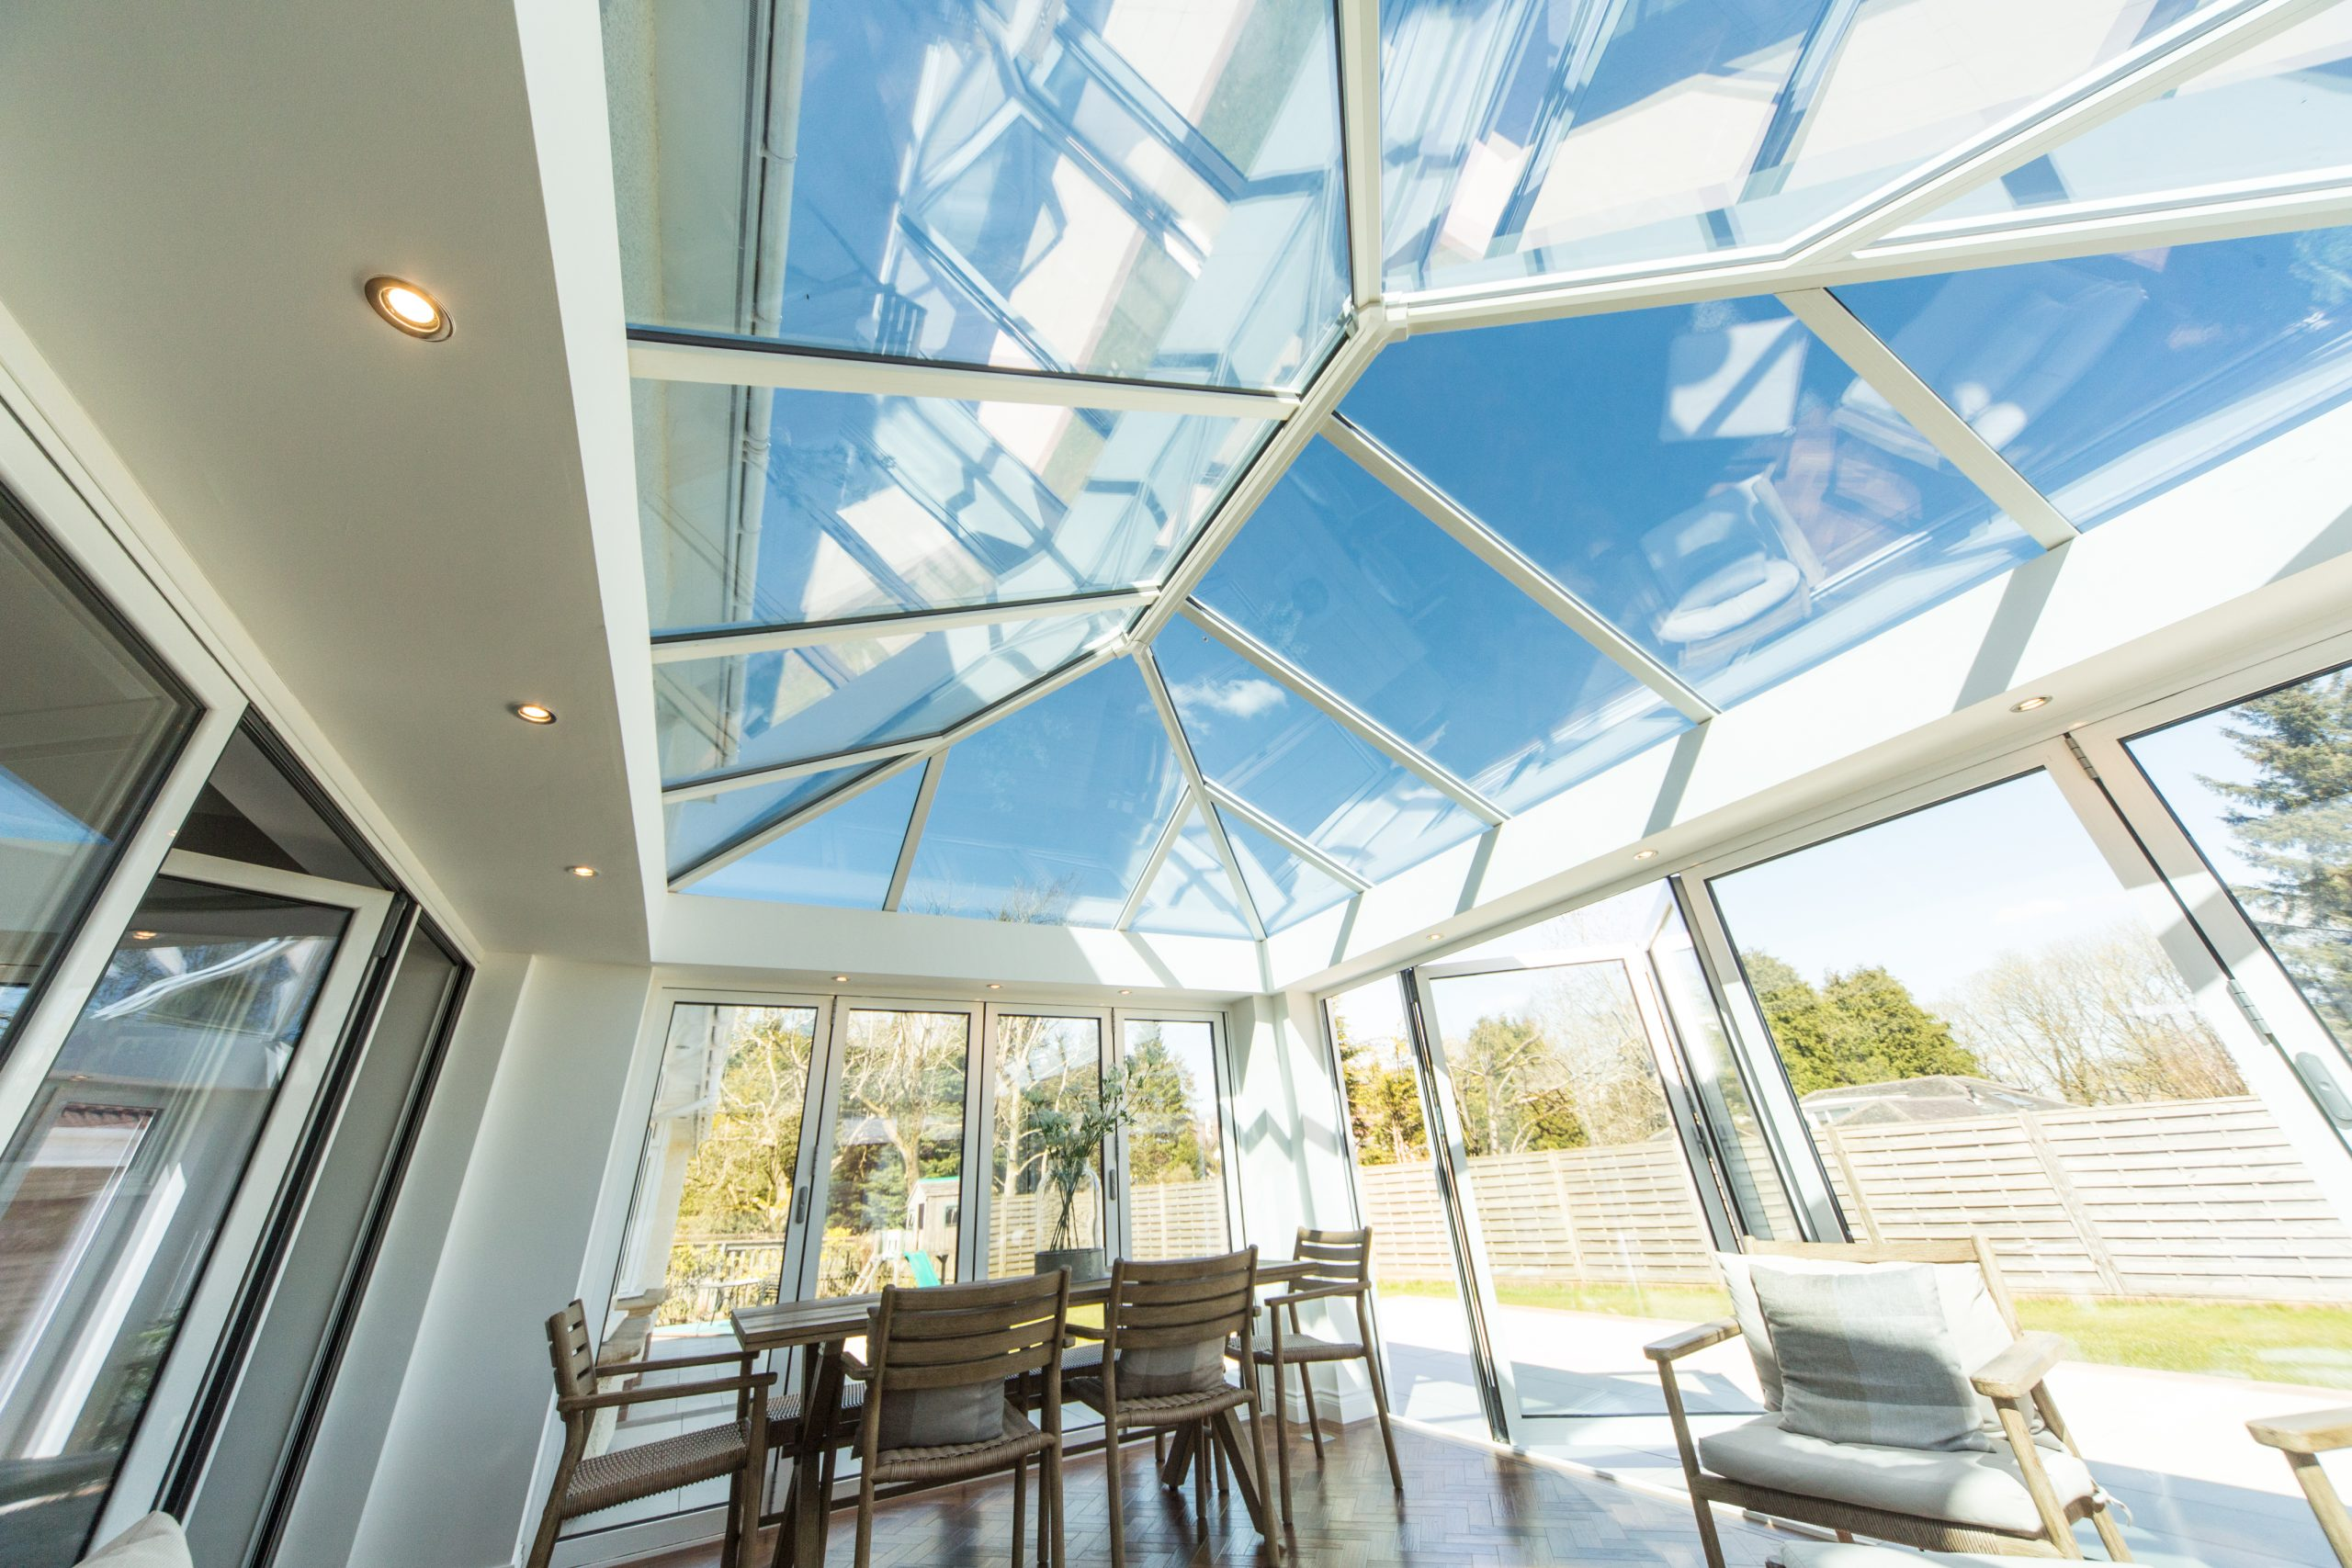 Conservatory designs you hadn't thought of